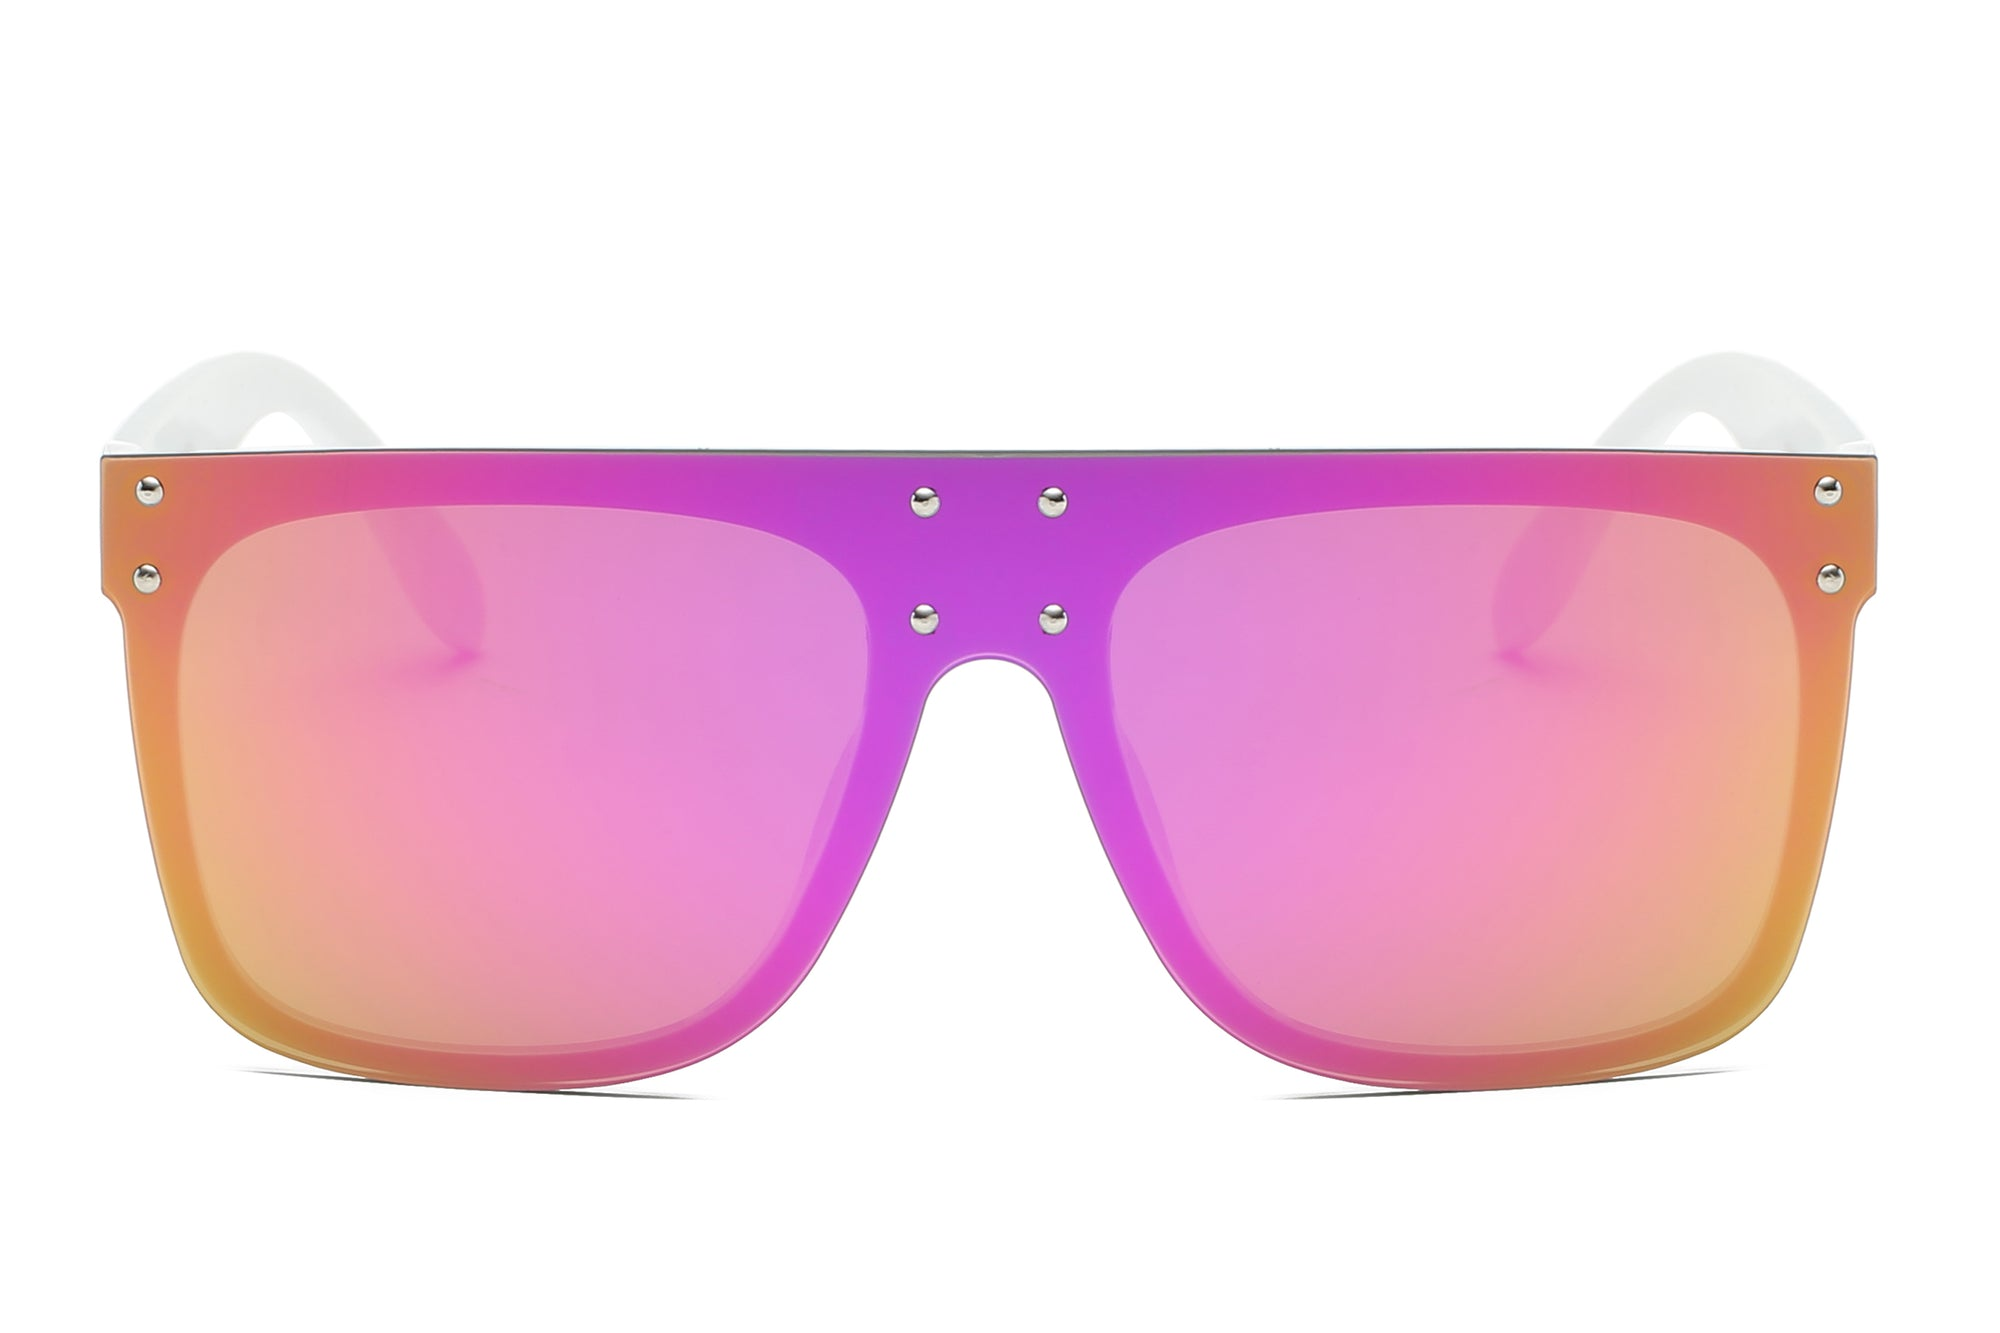 S2060 - Flat Top Oversize Mirrored Square Sunglasses - Iris Fashion Inc. | Wholesale Sunglasses and Glasses